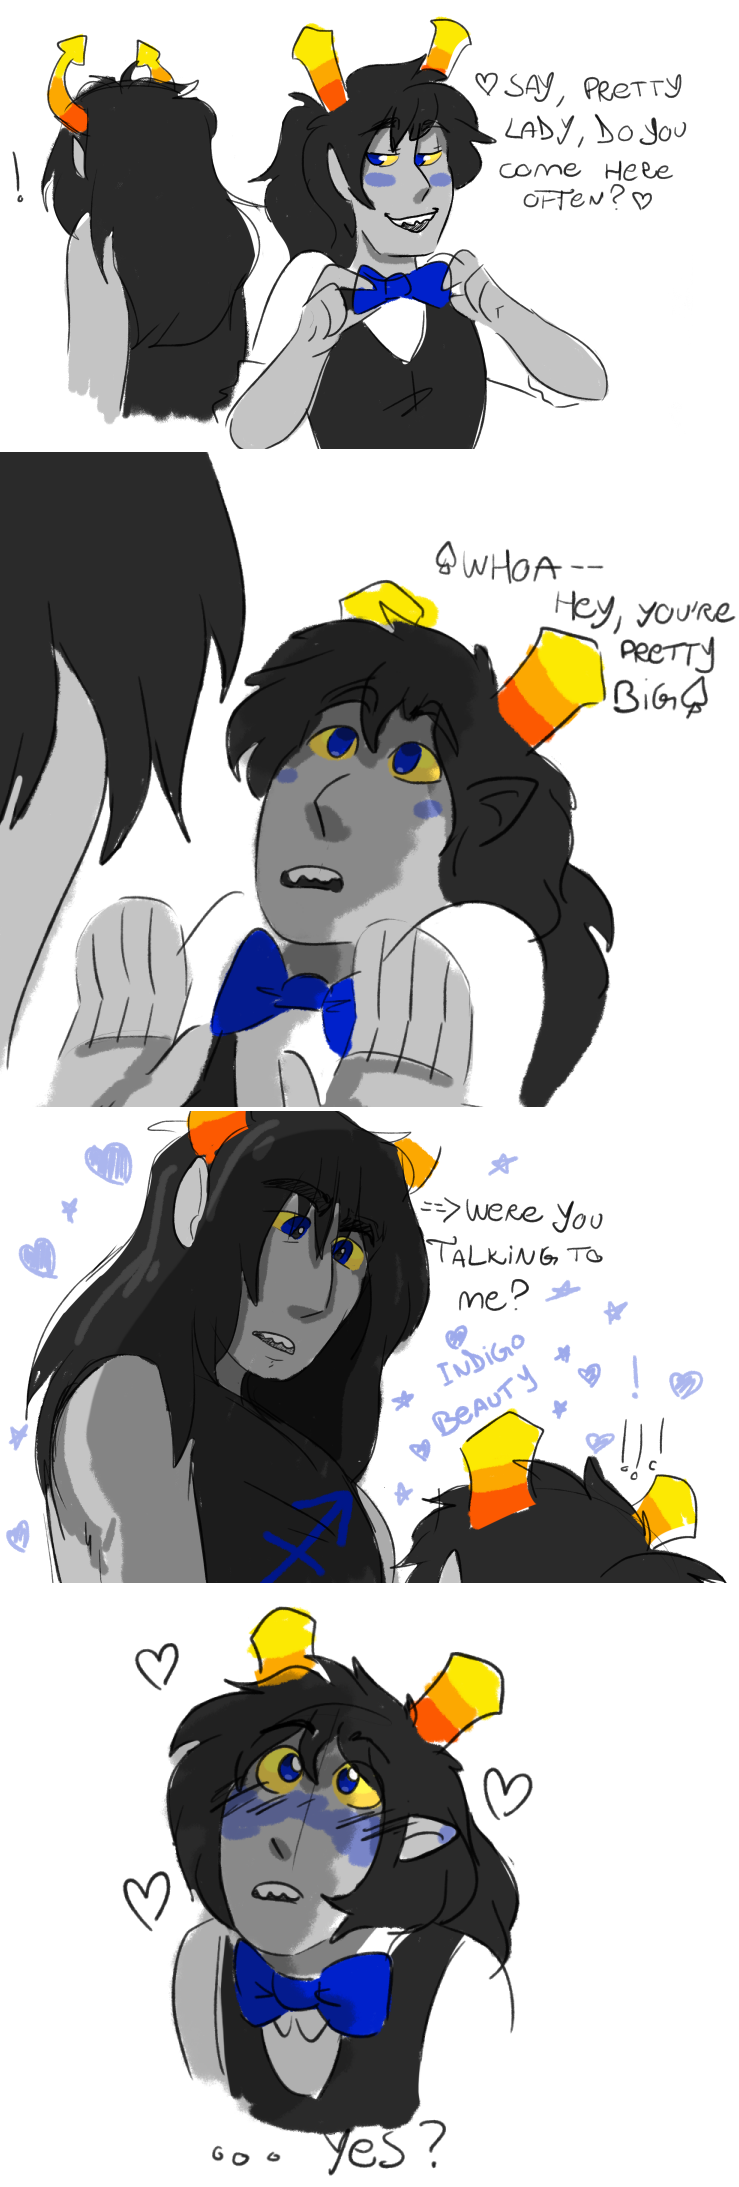 blush comic equius_zahhak heart hiveswap no_glasses sharunie shipping text zebruh_codakk